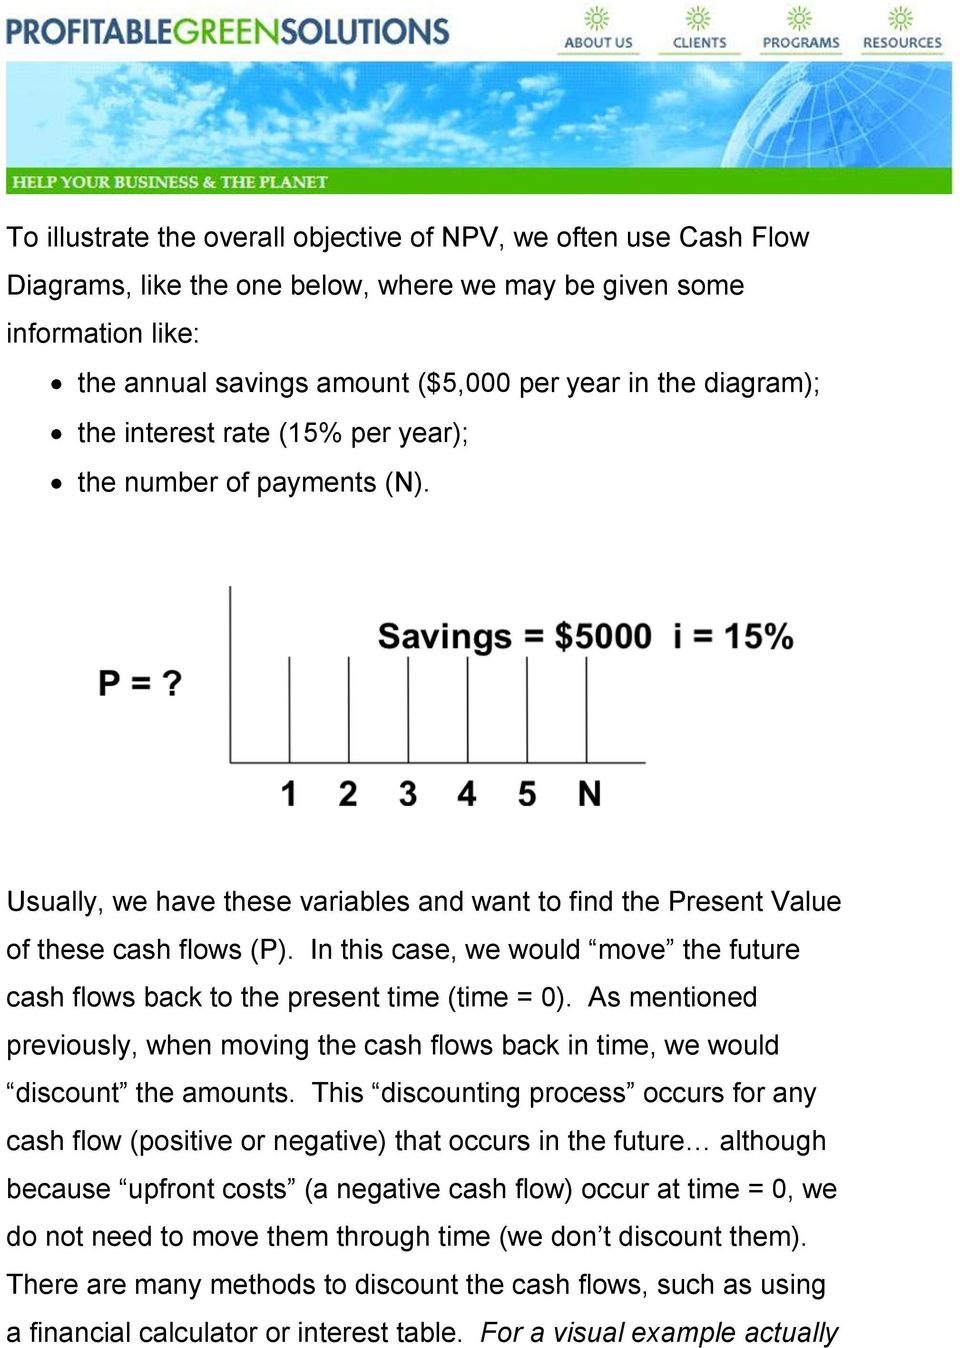 In this case, we would move the future cash flows back to the present time (time = 0). As mentioned previously, when moving the cash flows back in time, we would discount the amounts.